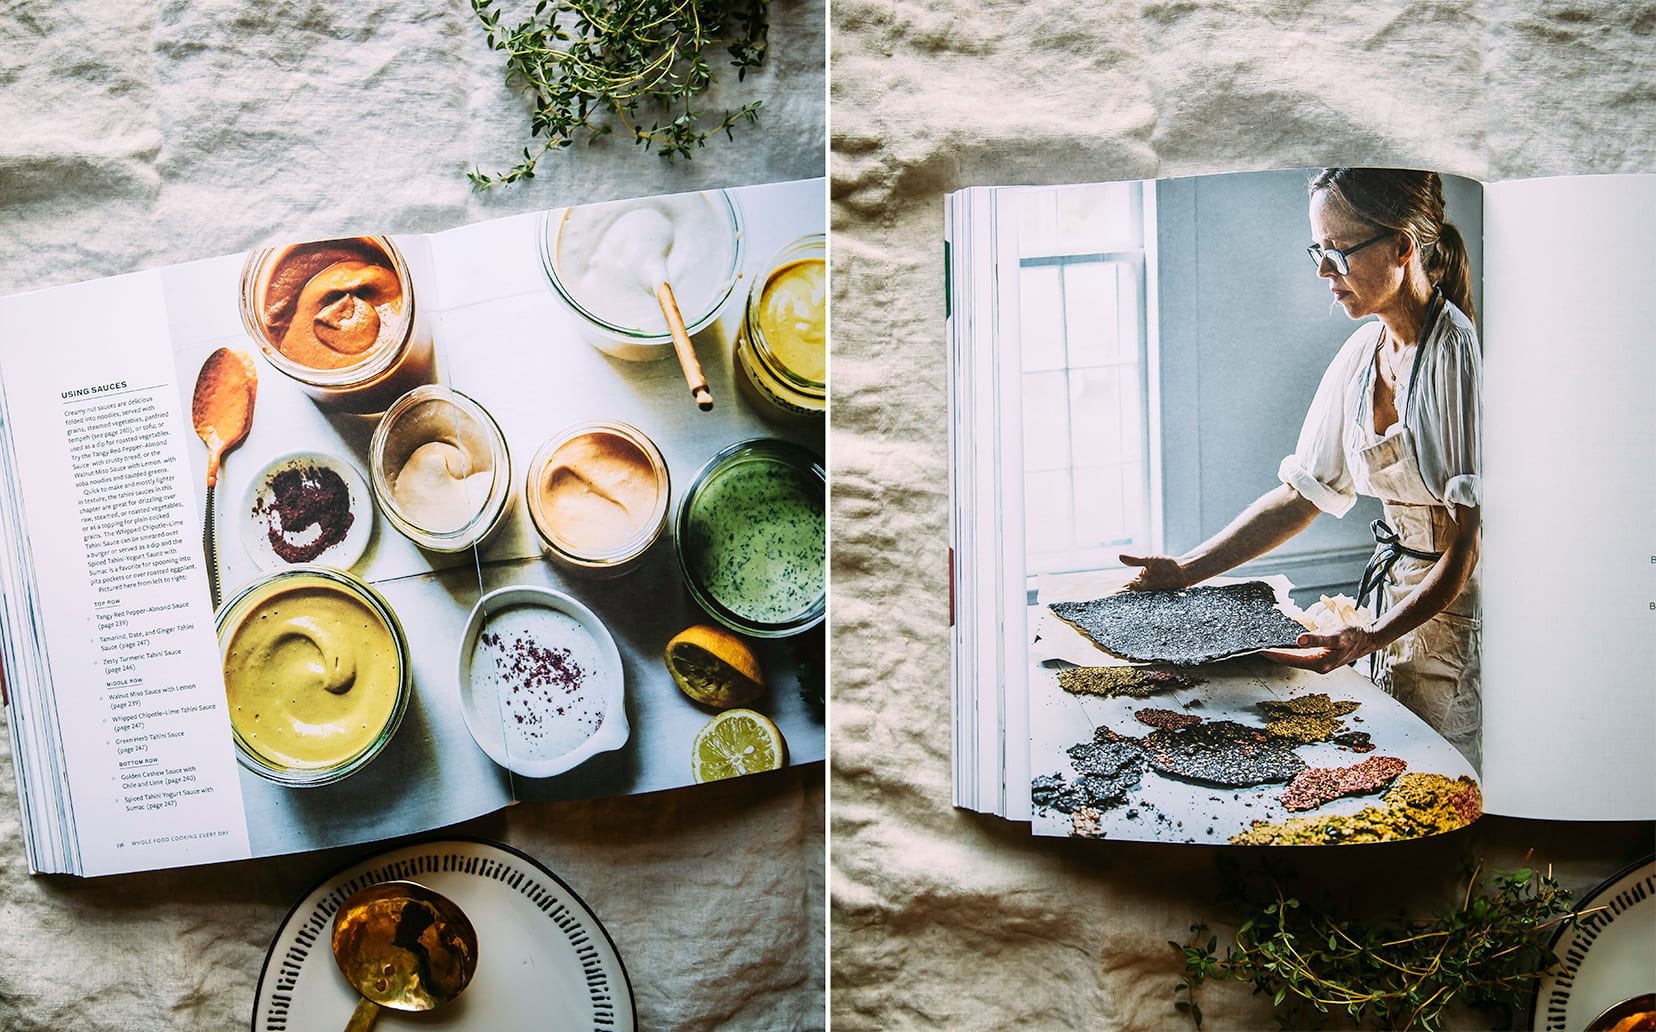 Two images show interior pages of the cookbook.